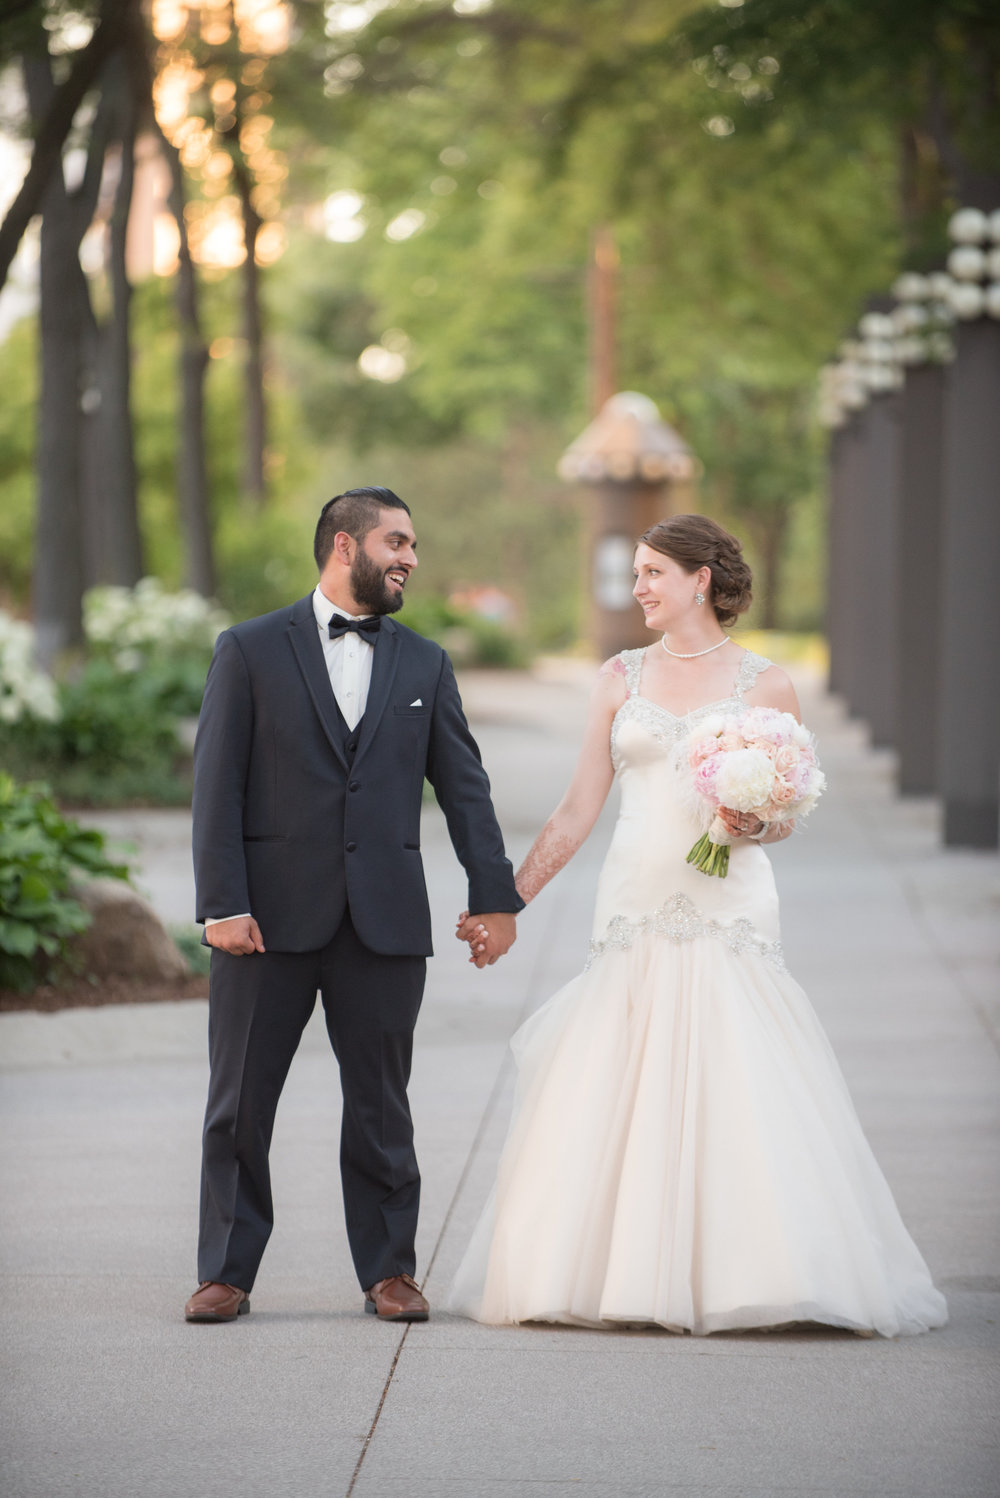 Photography:  Kelly Brown Weddings  | Planner: The Simply Elegant Group,  Kerry  |Venue:  Millennium Hotel Mpls  | Stationary:  Minted  | DJ:  Instant Request  | Florals:  Sadie's Floral  | Linens/Rentals   Linen Effects  &  Avant  | Hair:  139 Hair by Heidi  | Bakery:  Queen of Cakes